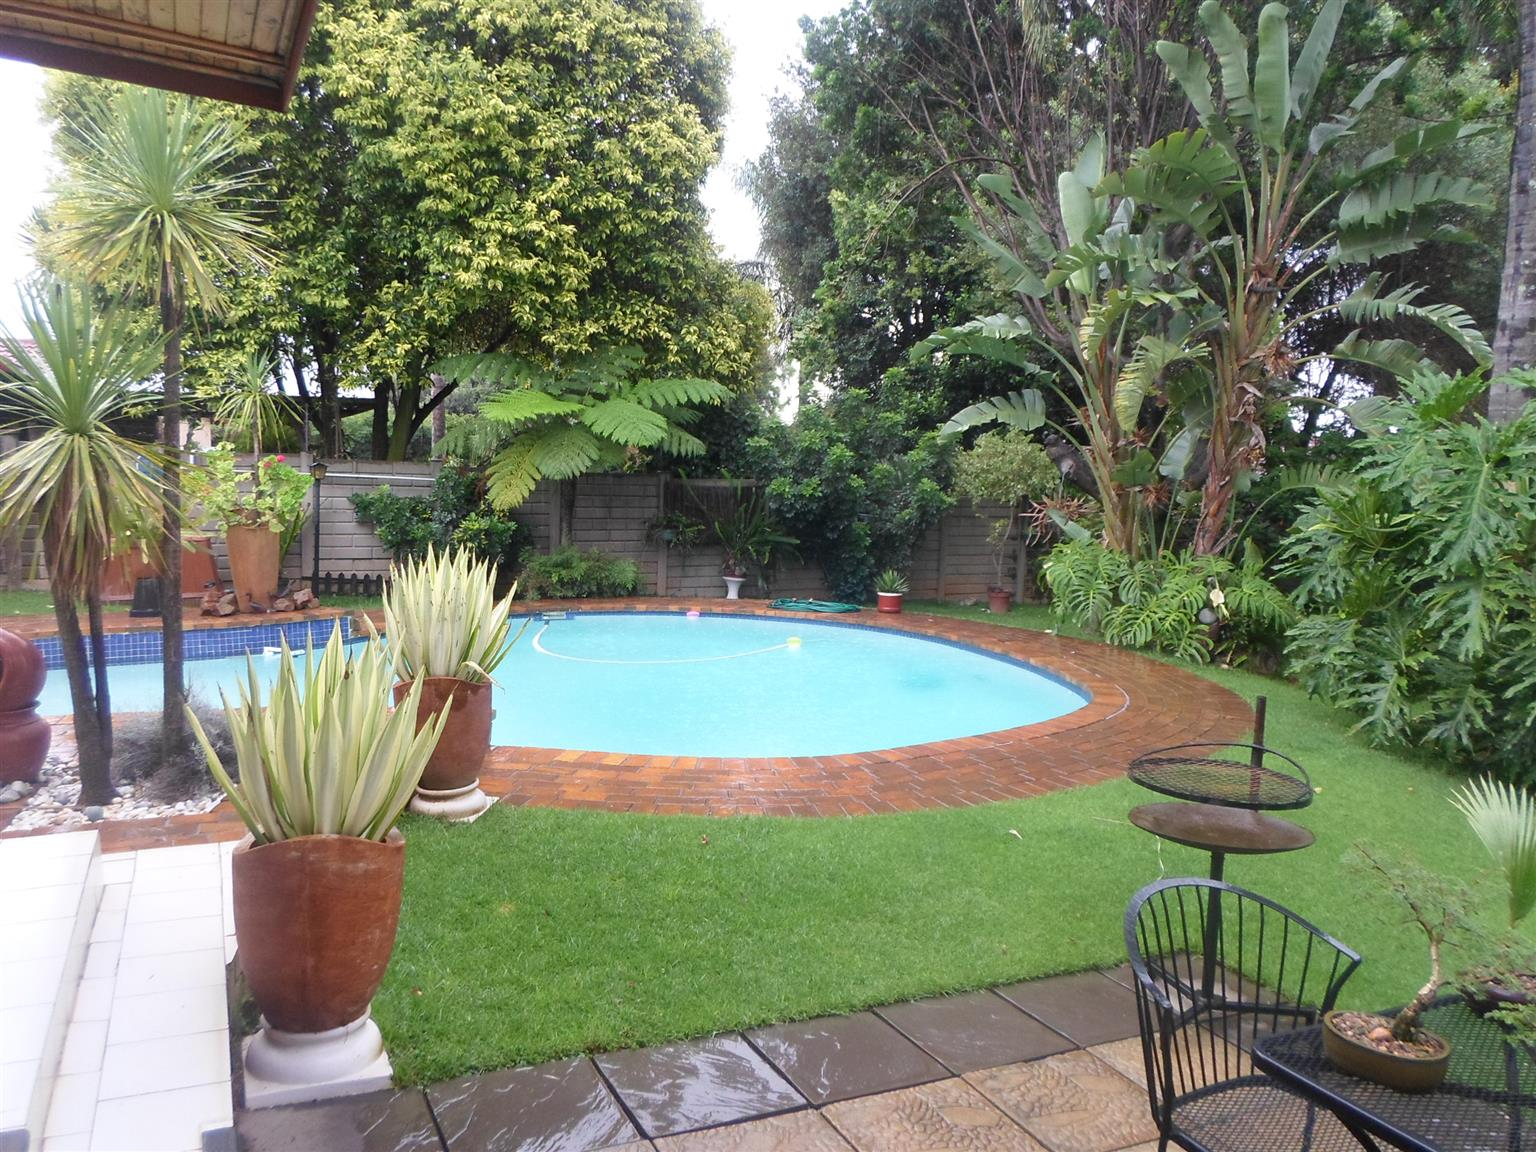 3 Bedroom House for sale in Rooihuiskraal